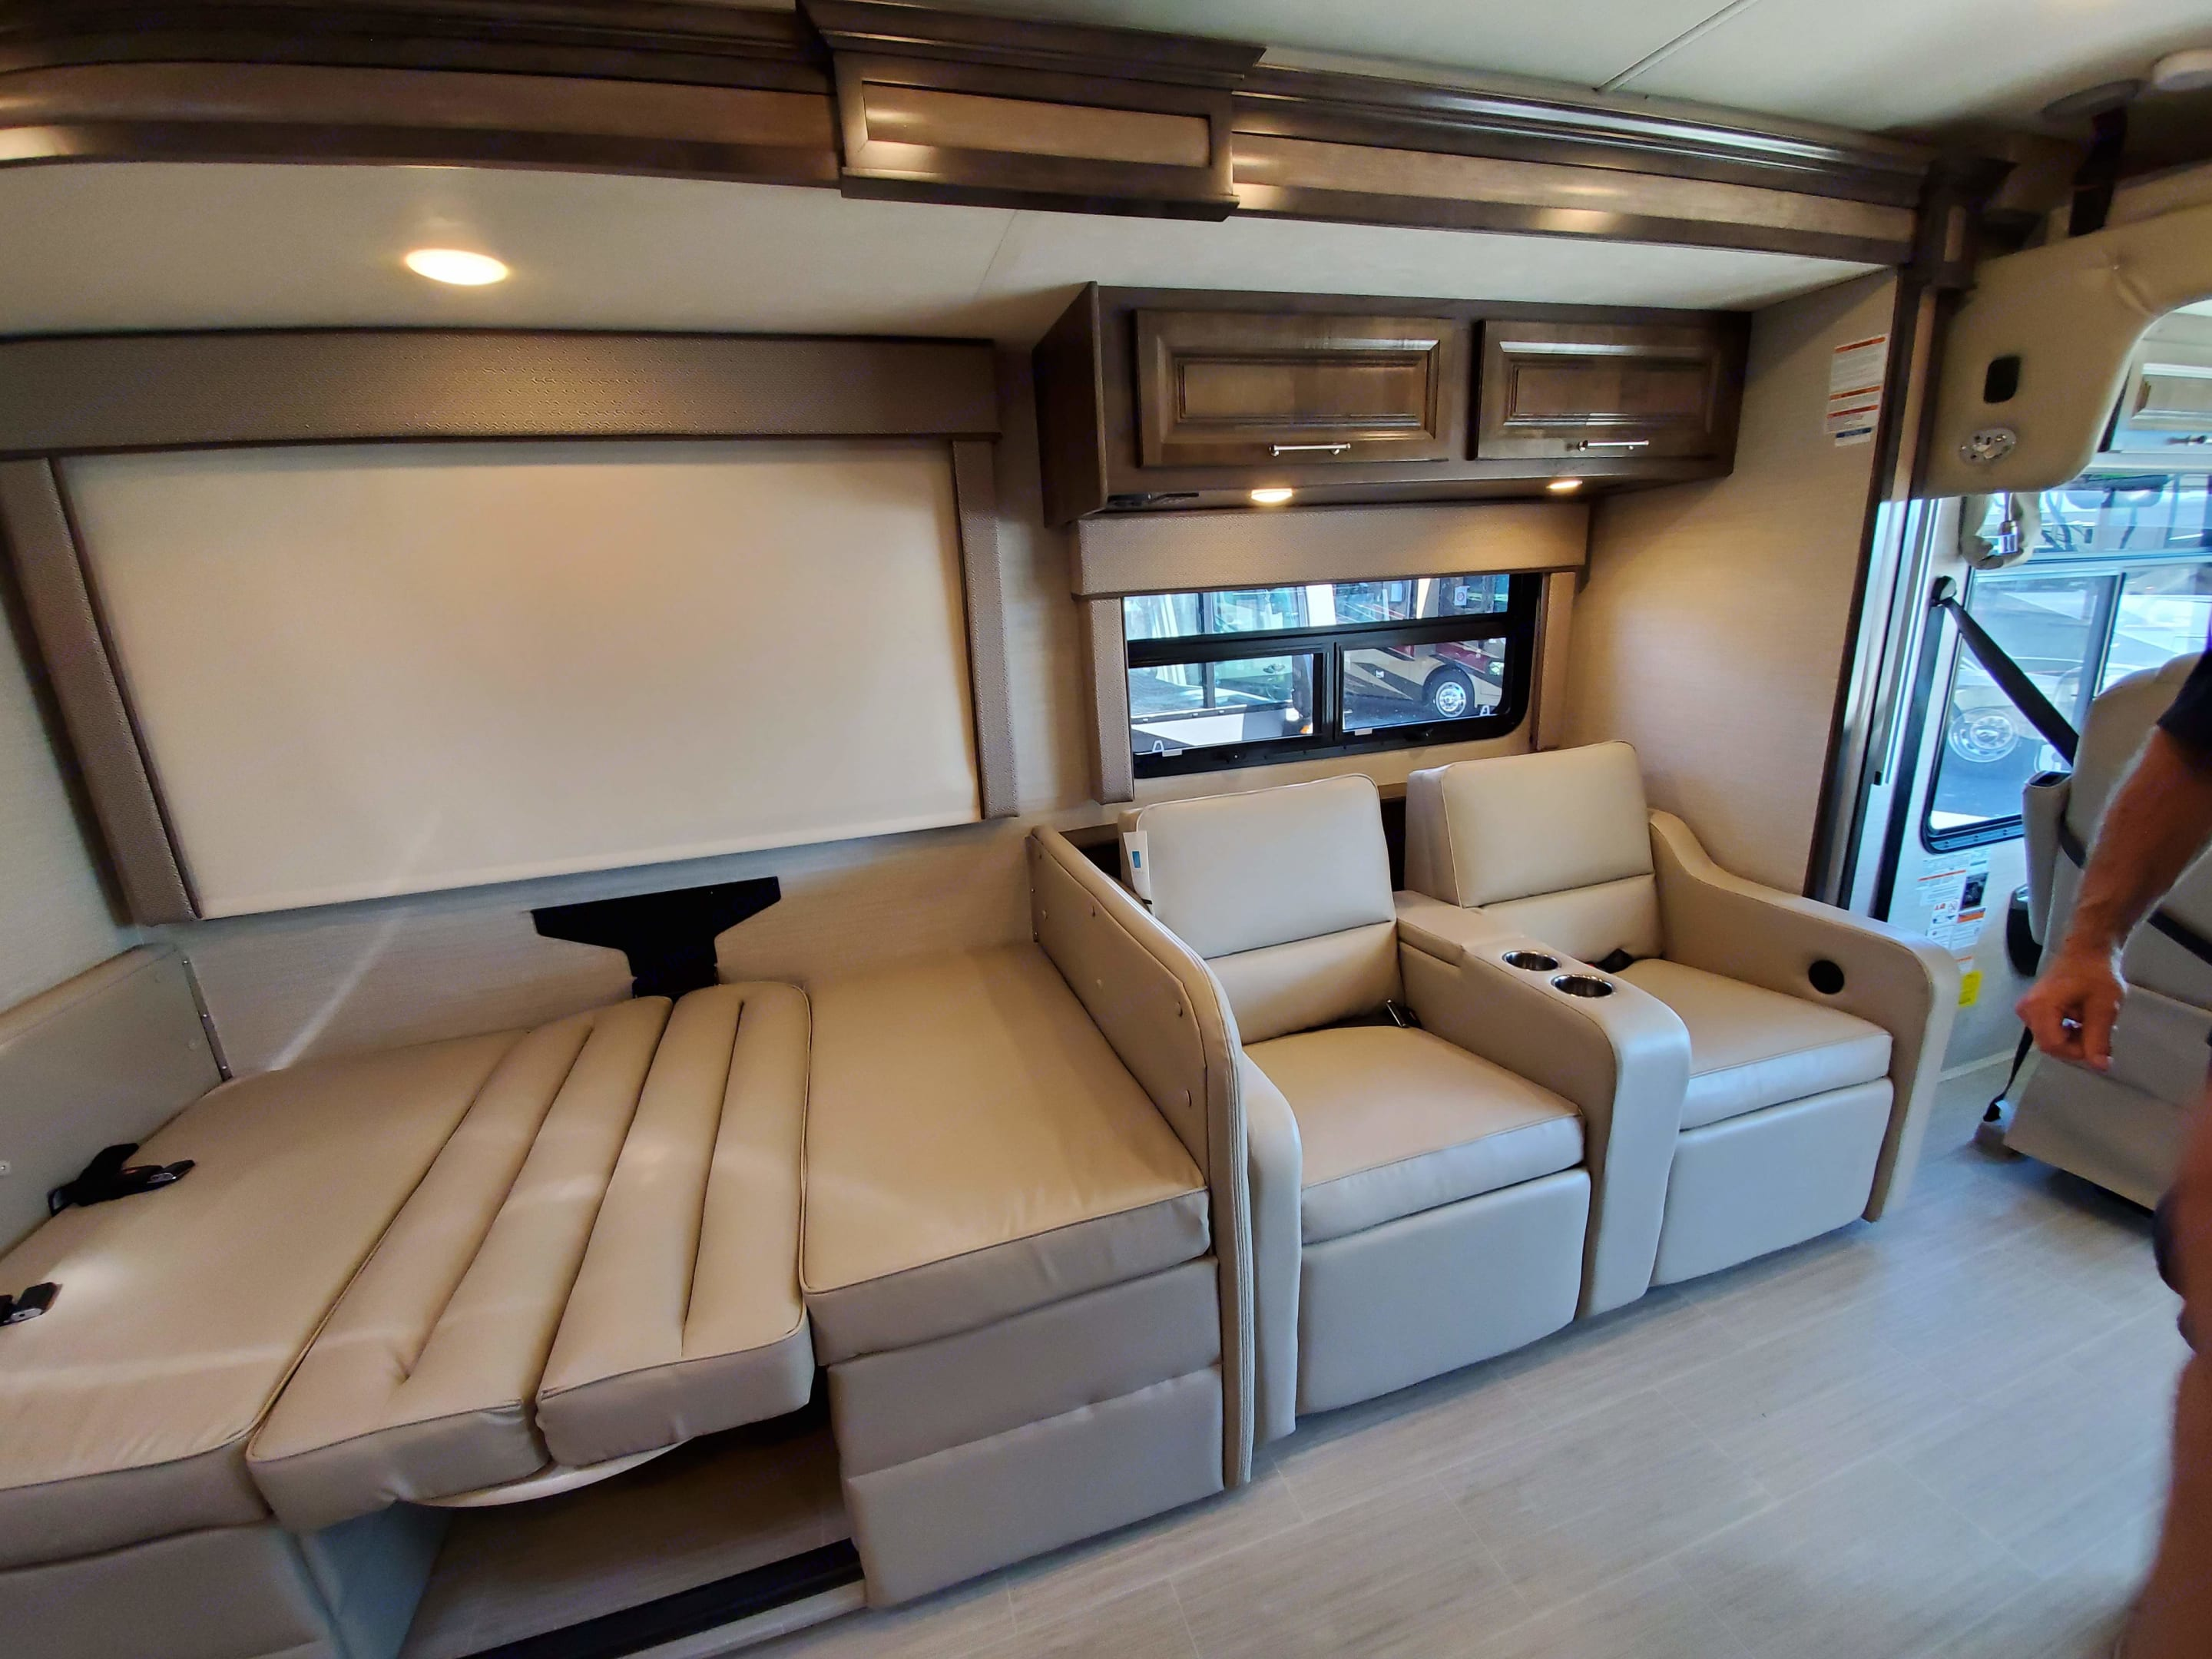 Dinette folds down to make a twin bed. Entegra Coach Vision XL 2020